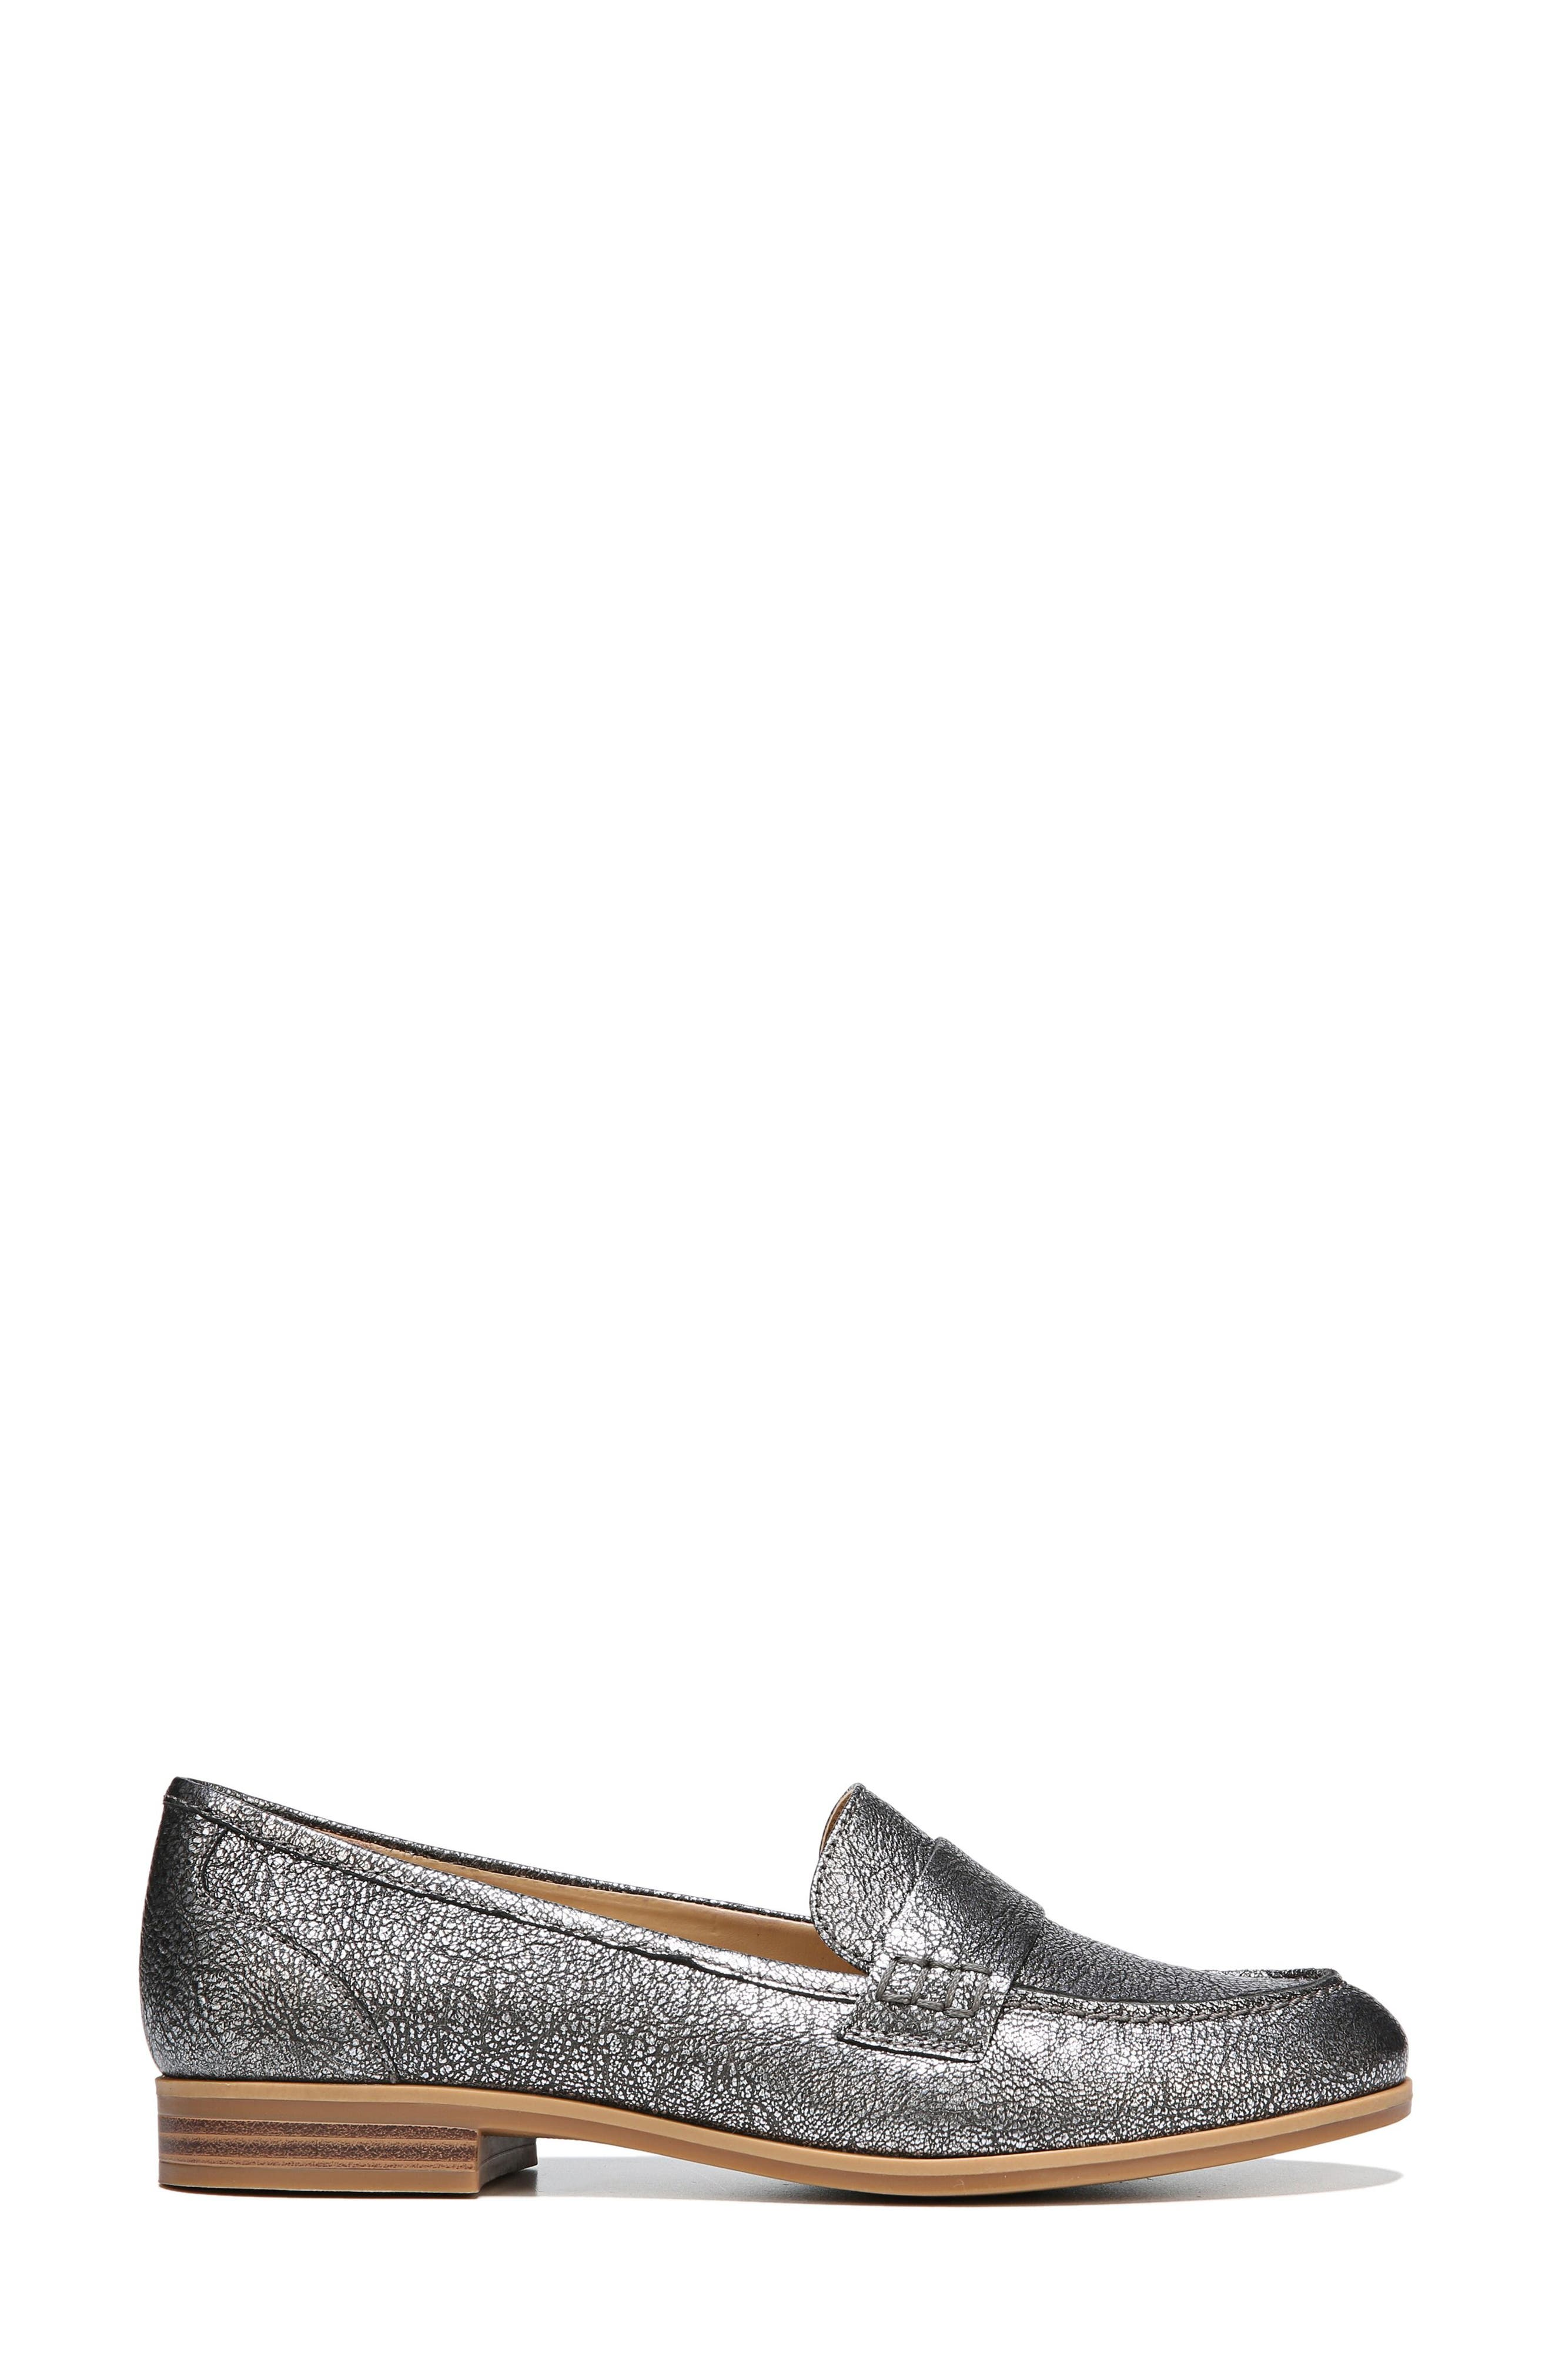 Veronica Loafer,                             Alternate thumbnail 3, color,                             Silver Leather